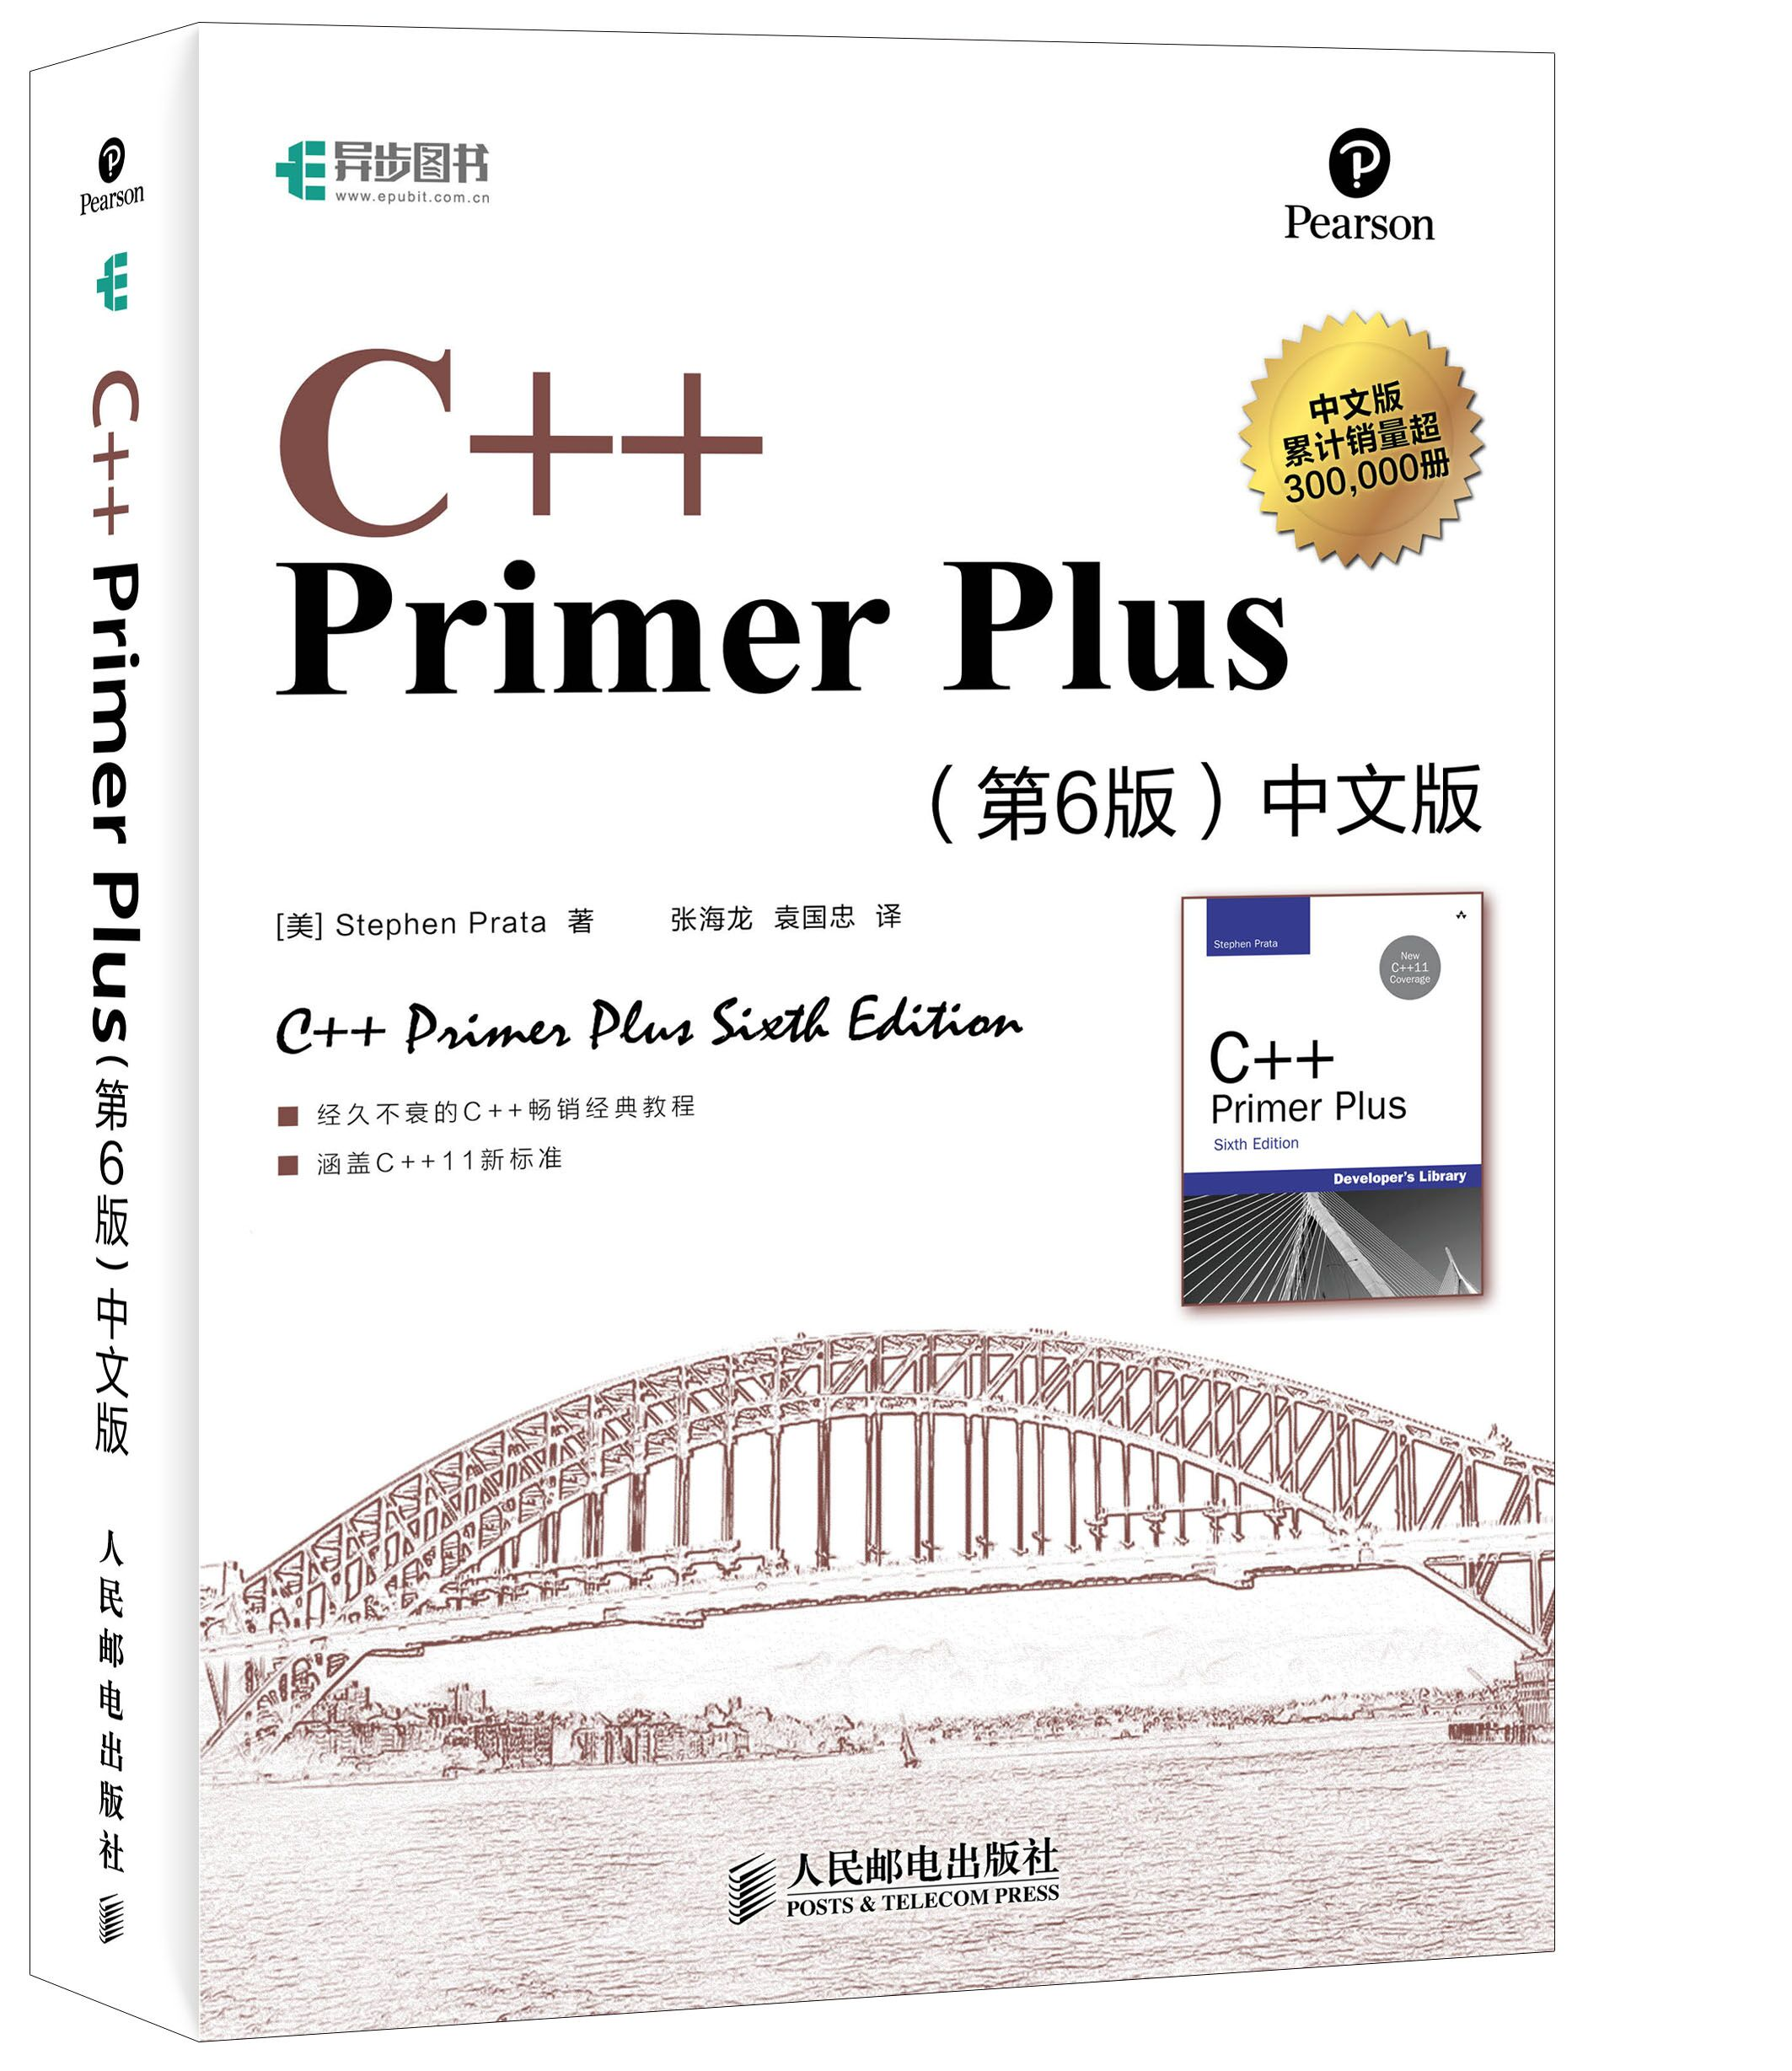 C Primer Plus 6th edition Chinese sixth edition C programming introduction  to proficiency C language tutorial C language introduction tutorial